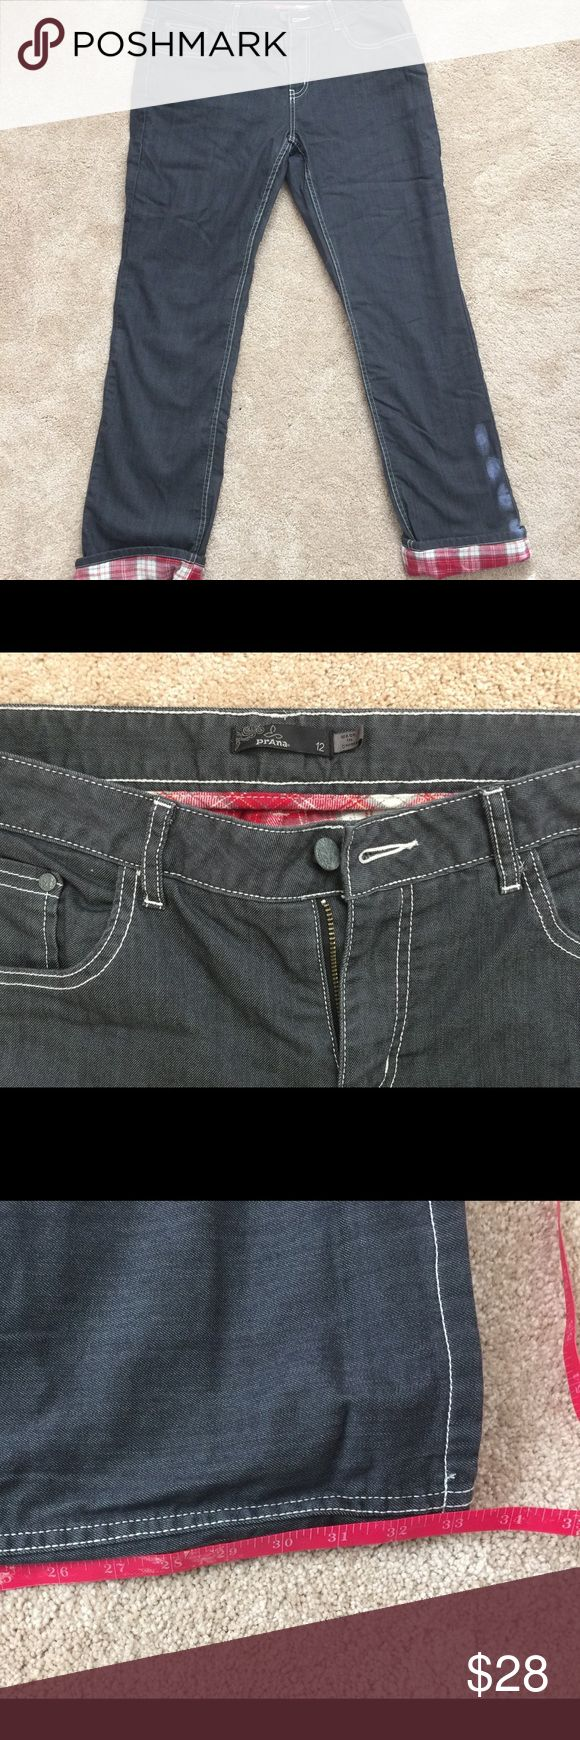 Prana flannel lined jeans NWOT 12. Prana flannel lined jeans NWOT 12. Super cute. Measurements shown in photos. Too small for me so my loss can be your gain. Prana Jeans Straight Leg